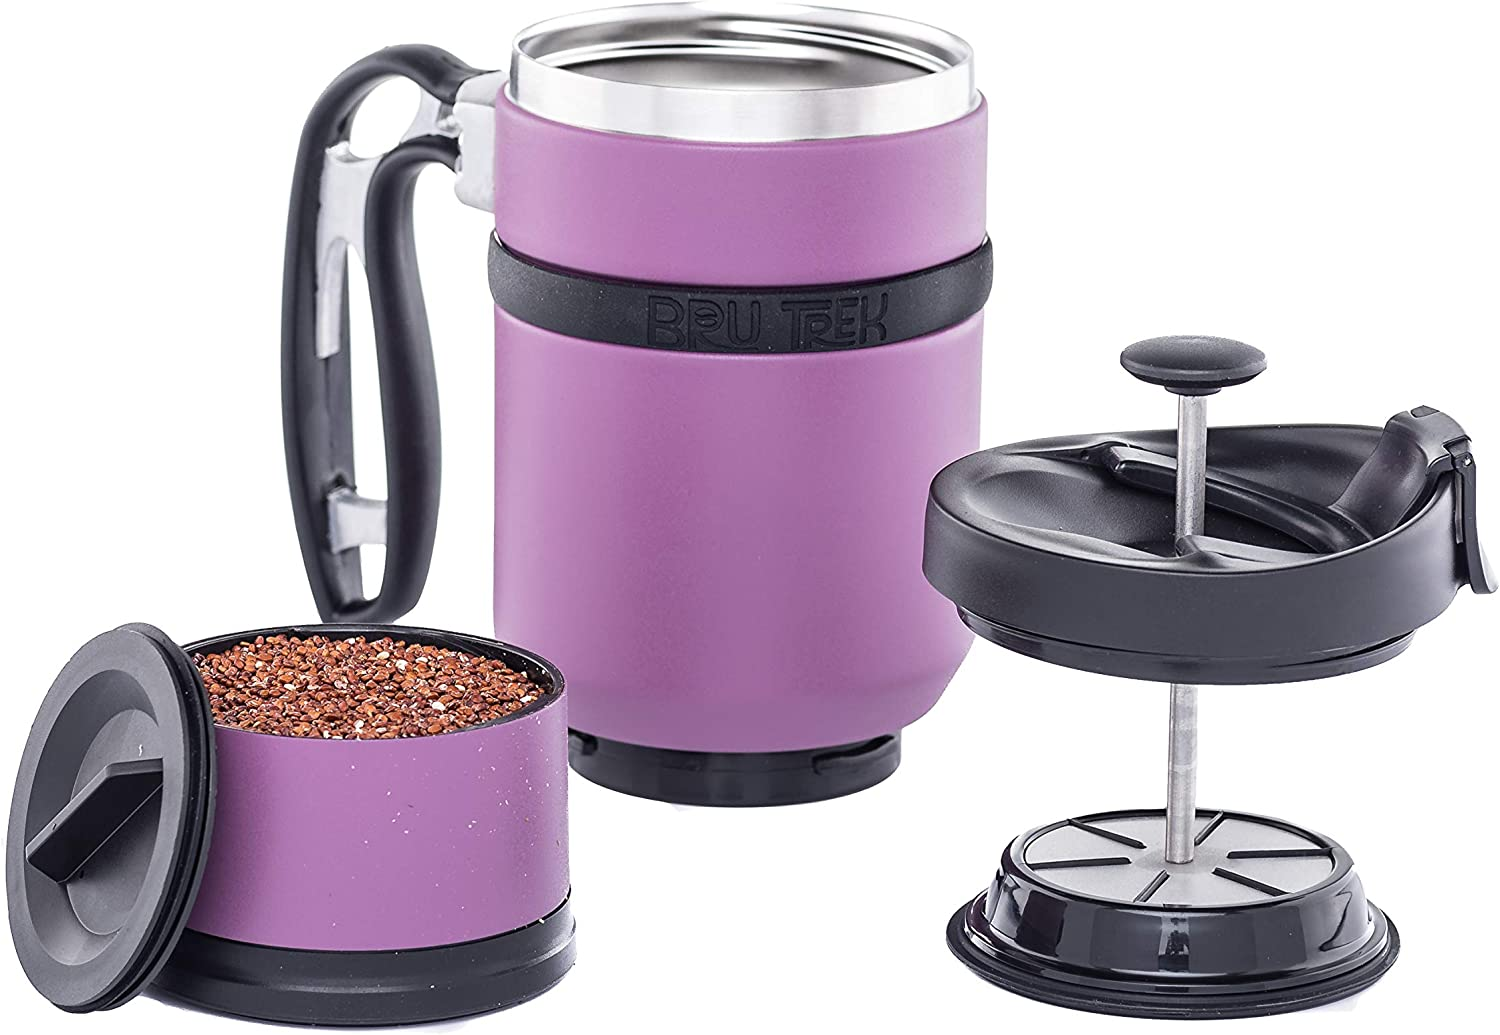 French Press with Br/ü-Stop Technology Candy Apple Red 20oz 2 Spill Proof Lids Desk Press Coffee Travel Mug